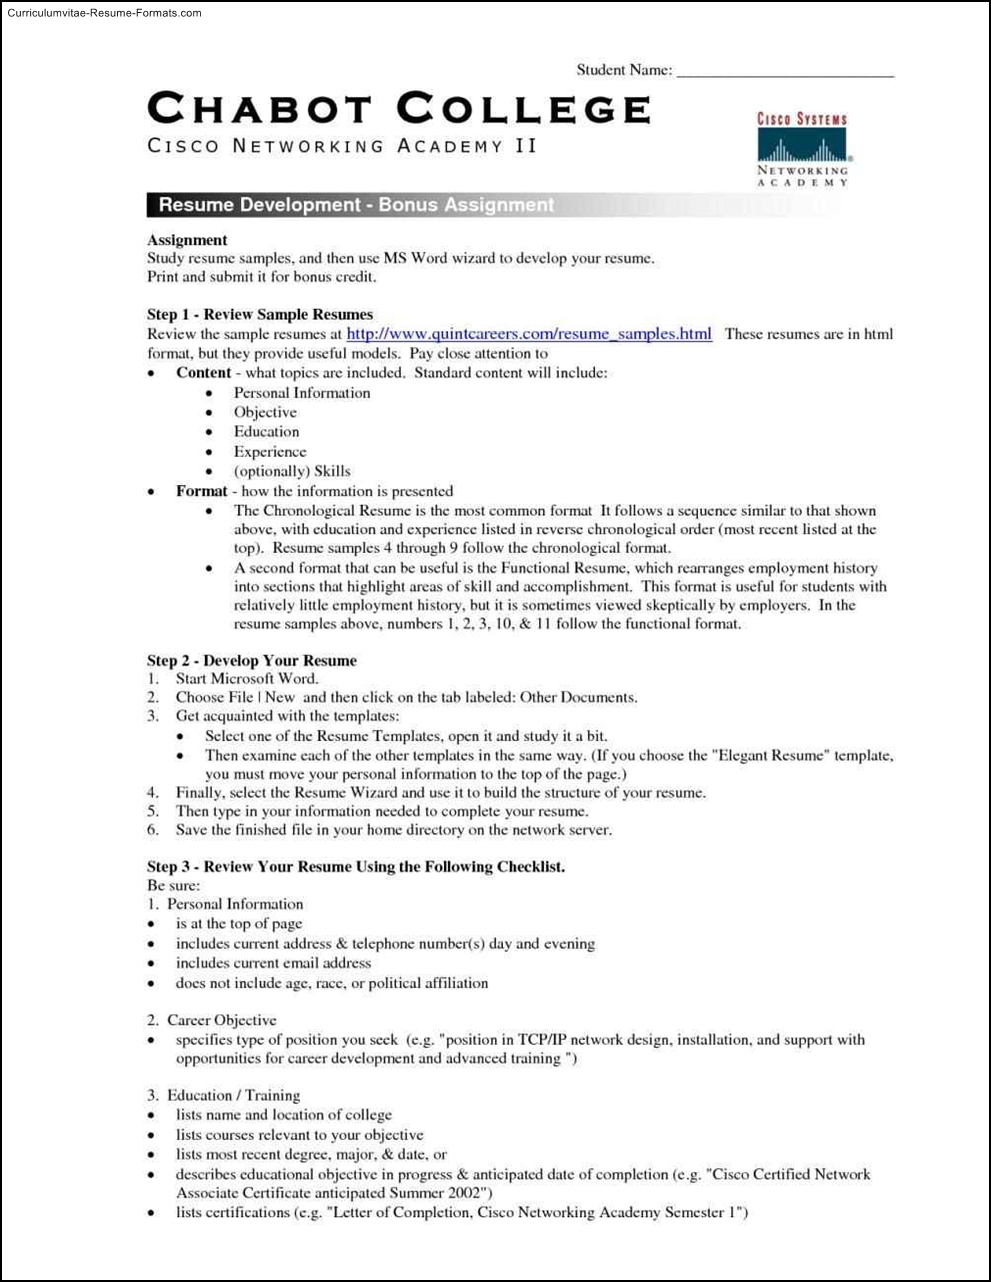 Resume guides college students